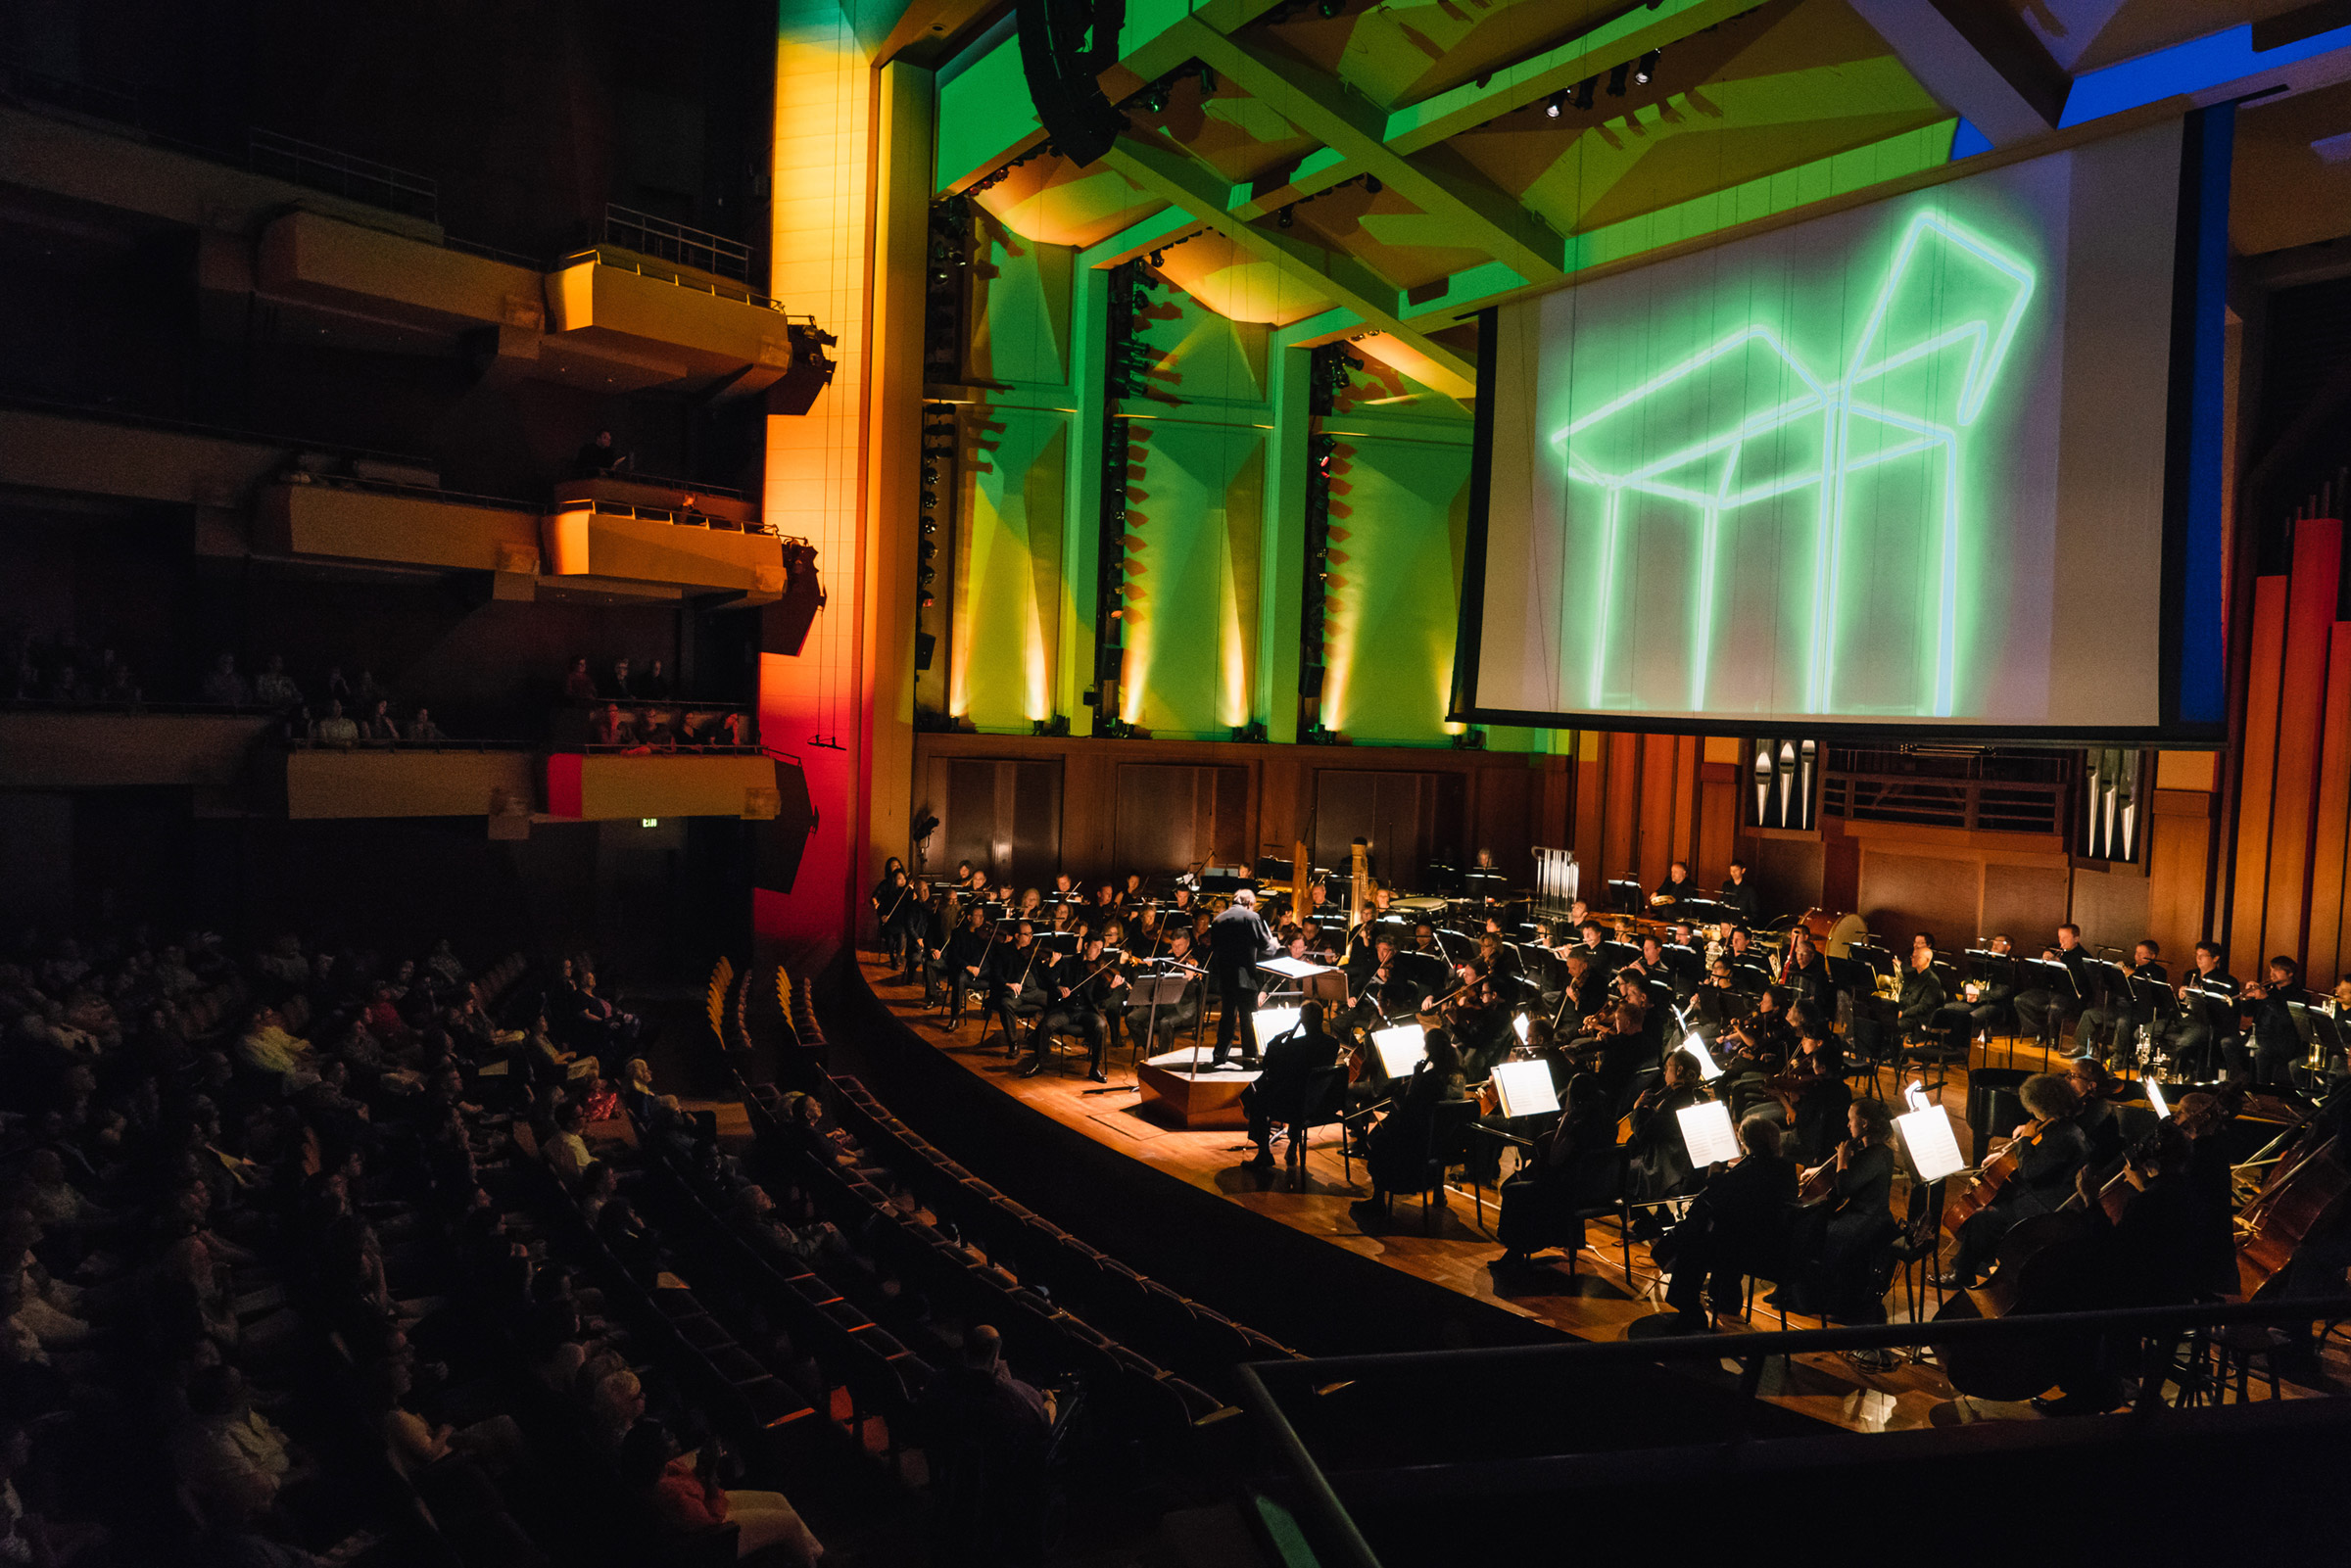 seattle-symphony-orchestra-brandon-patoc-colorful-lighting-03.JPG